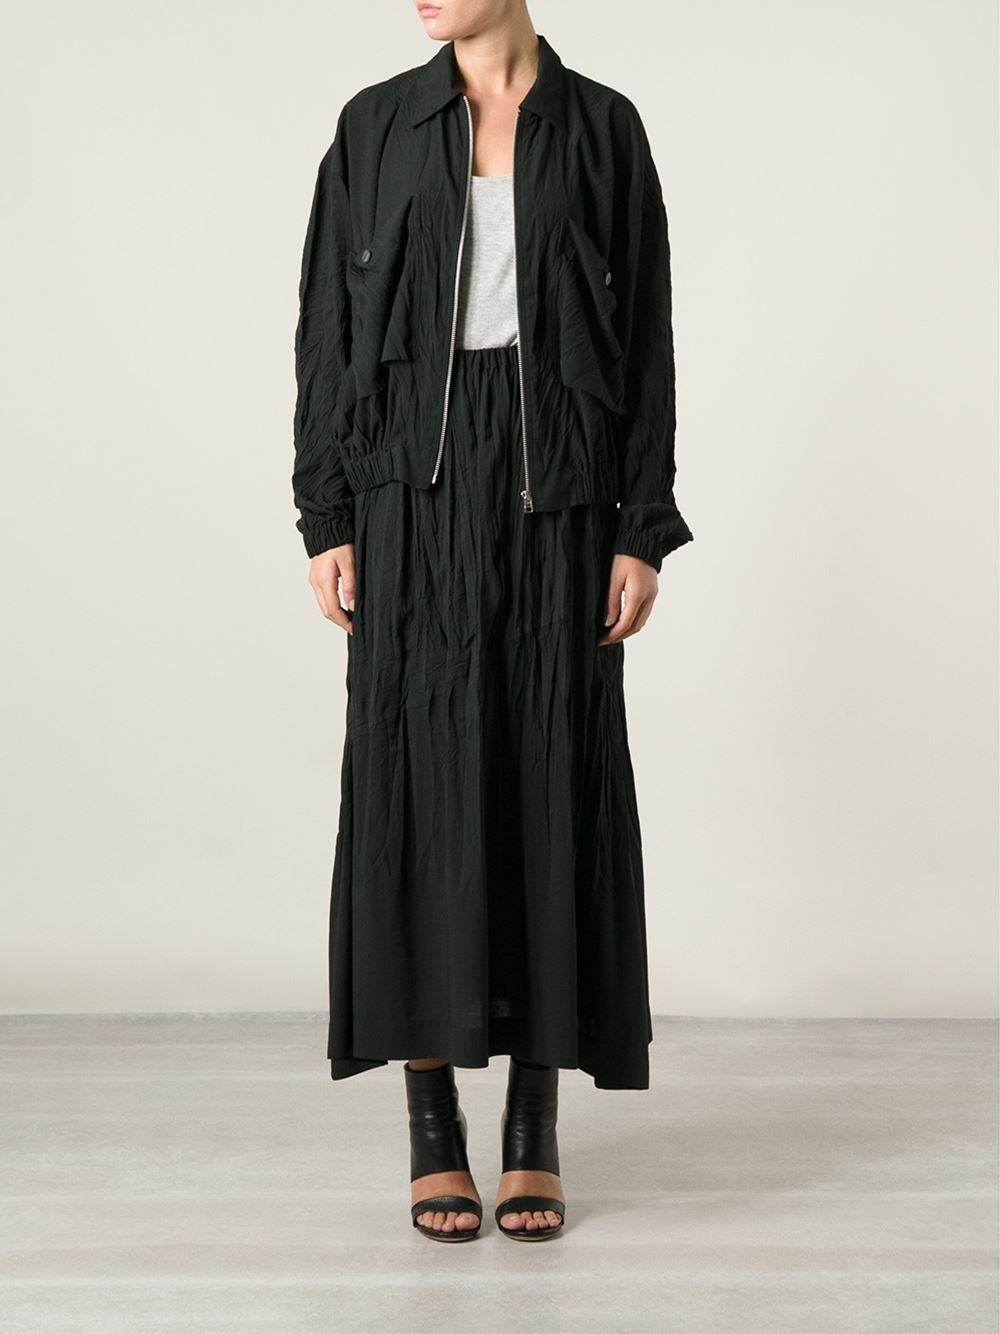 Issey miyake Skirt And Jacket Set in Black | Lyst